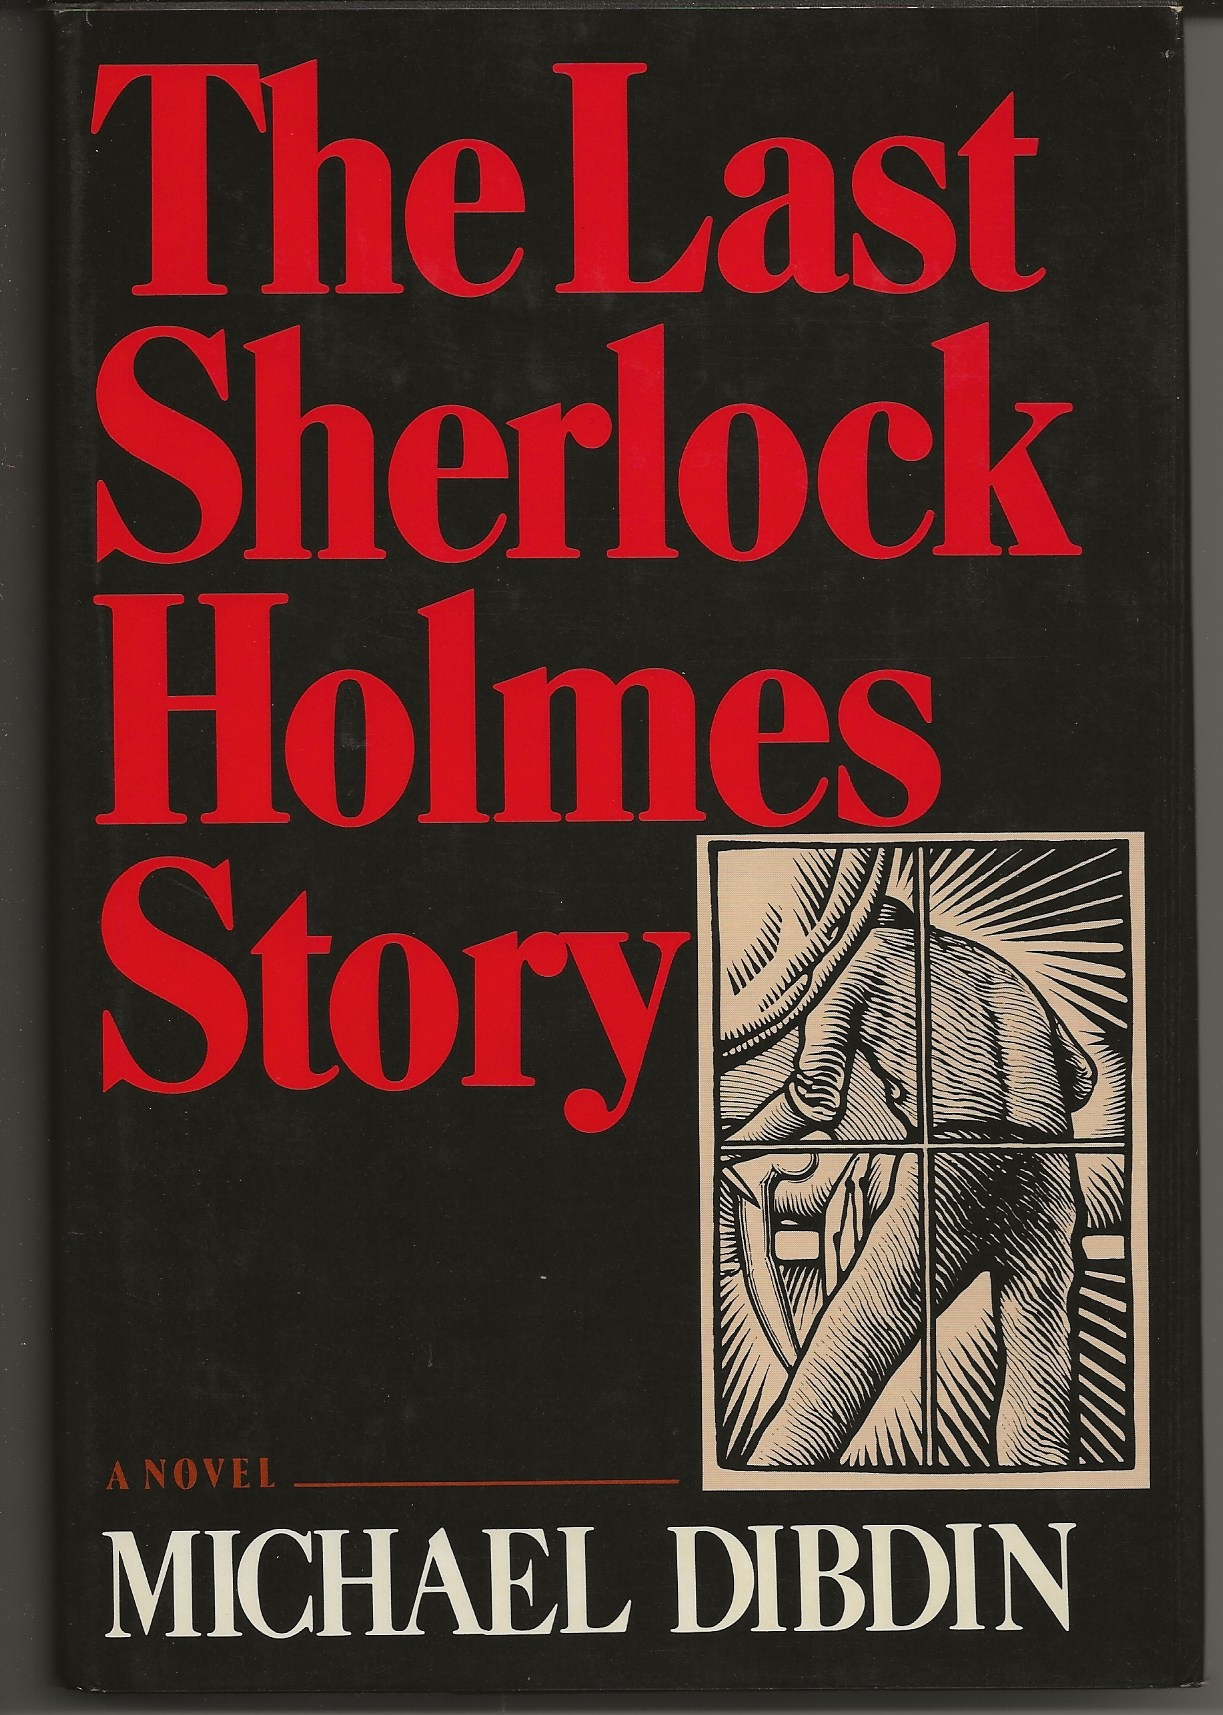 Image for THE LAST SHERLOCK HOLMES STORY